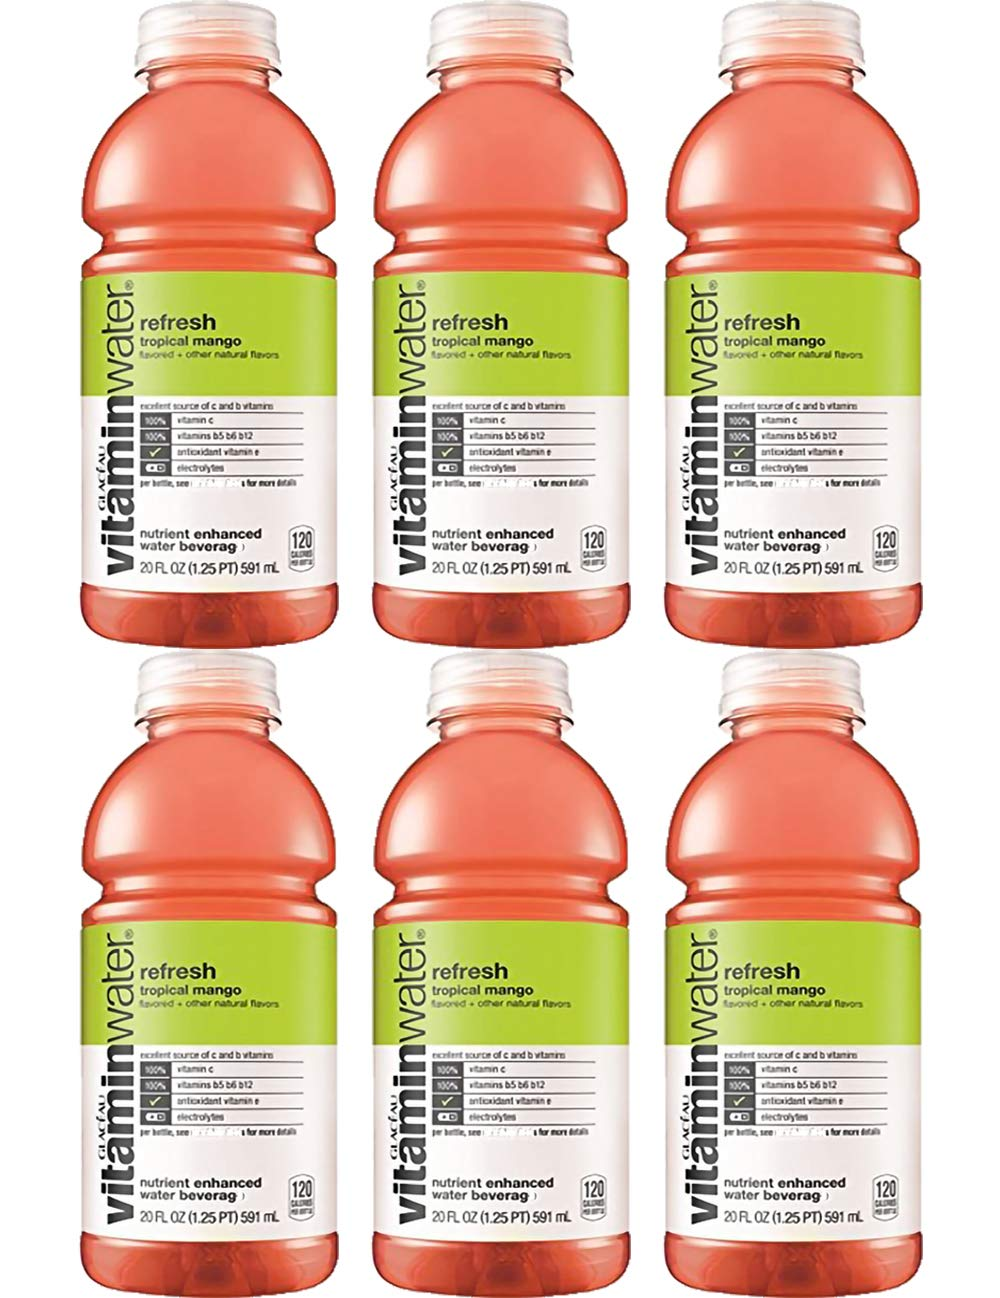 Vitamin Water Refresh Tropical Mango 20 Oz Bottle (Pack of 6, Total of 120 Oz